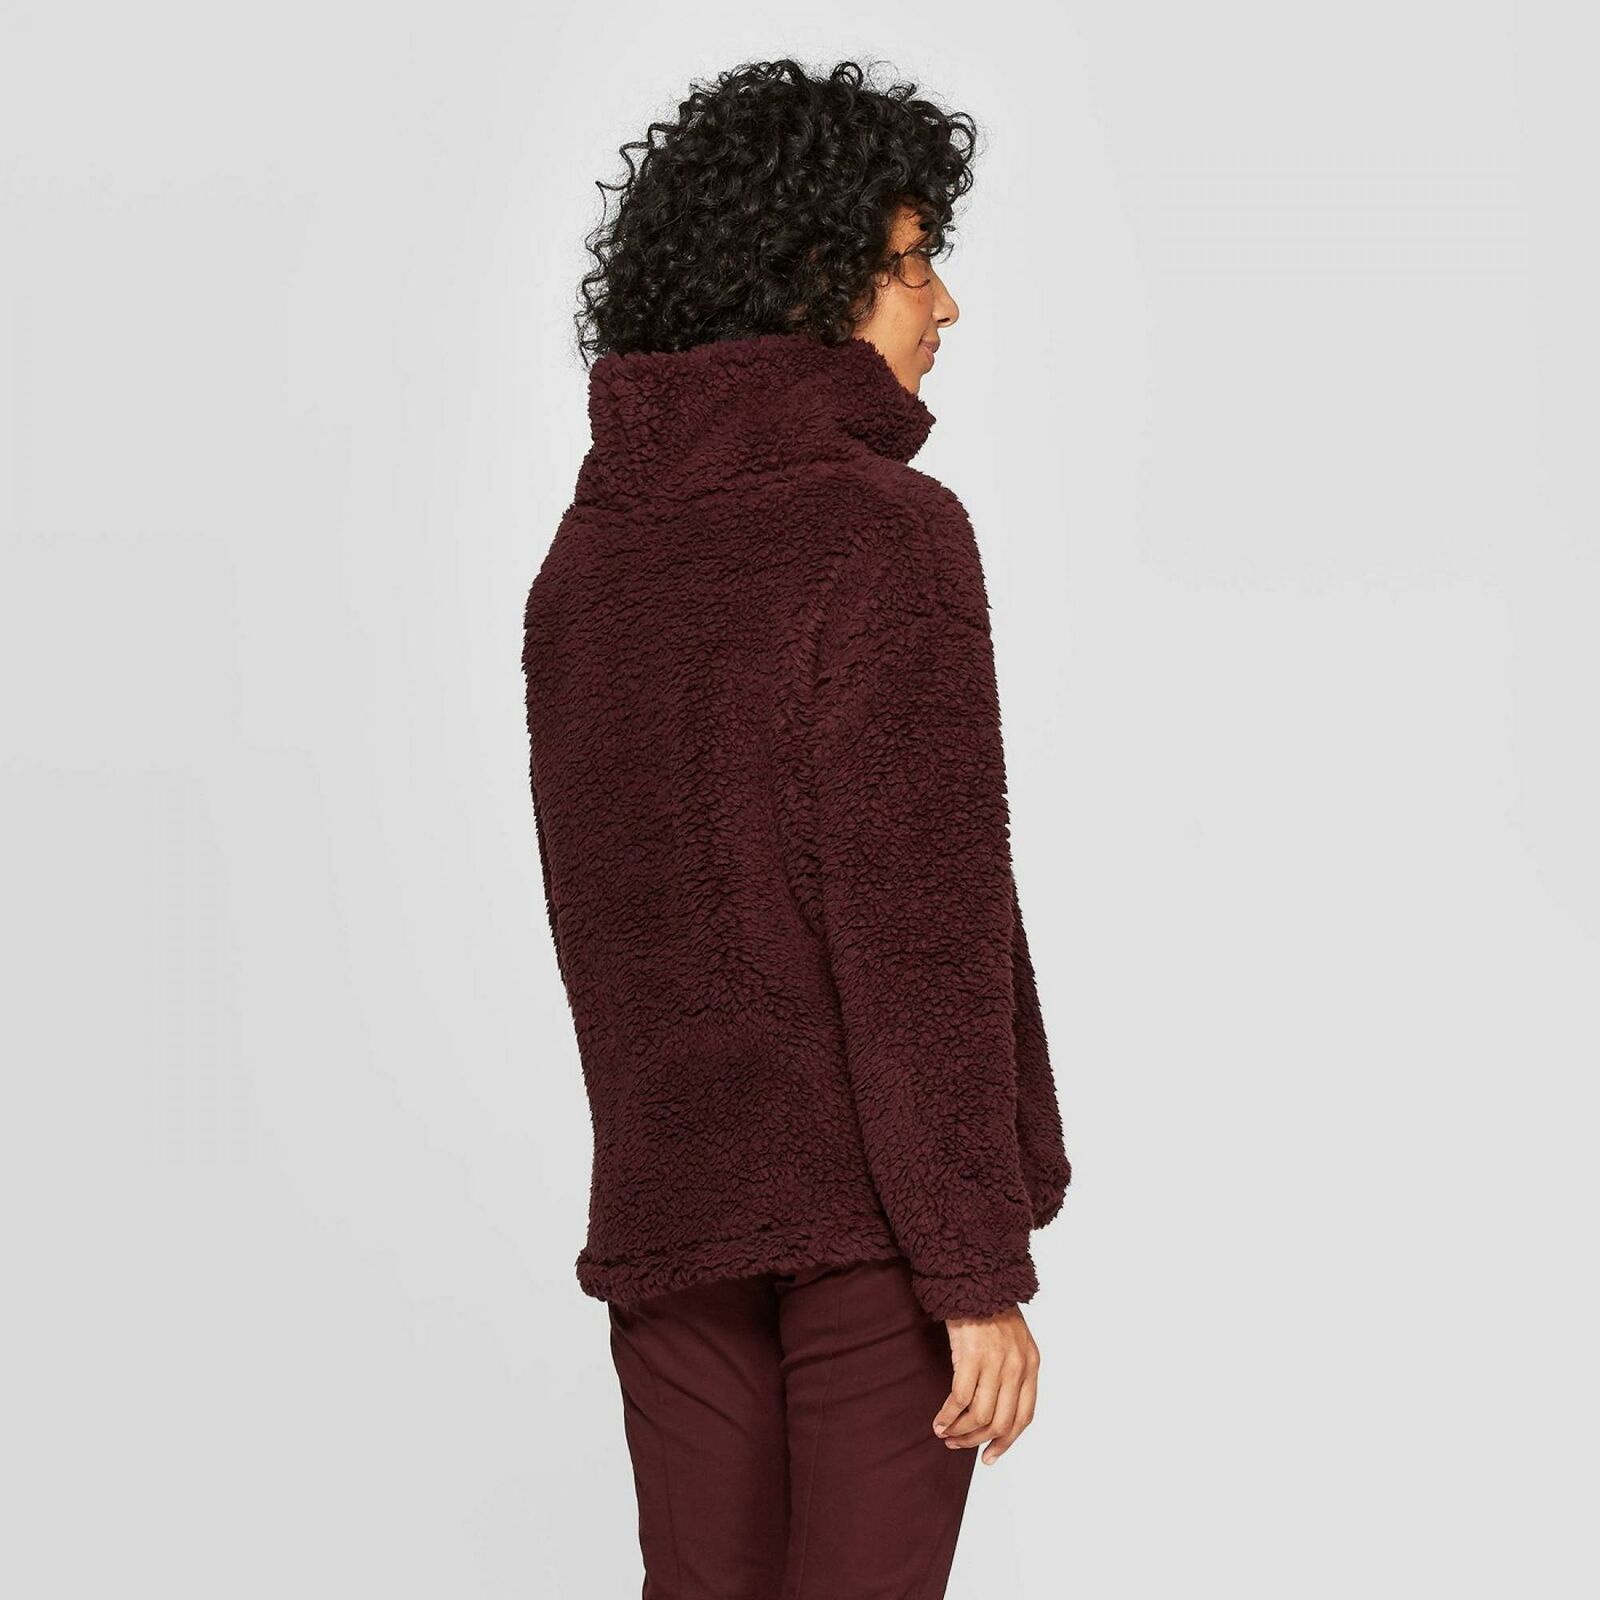 A New Day Women's Any Day Turtleneck Sherpa Pullover Sweatshirt Burgundy S